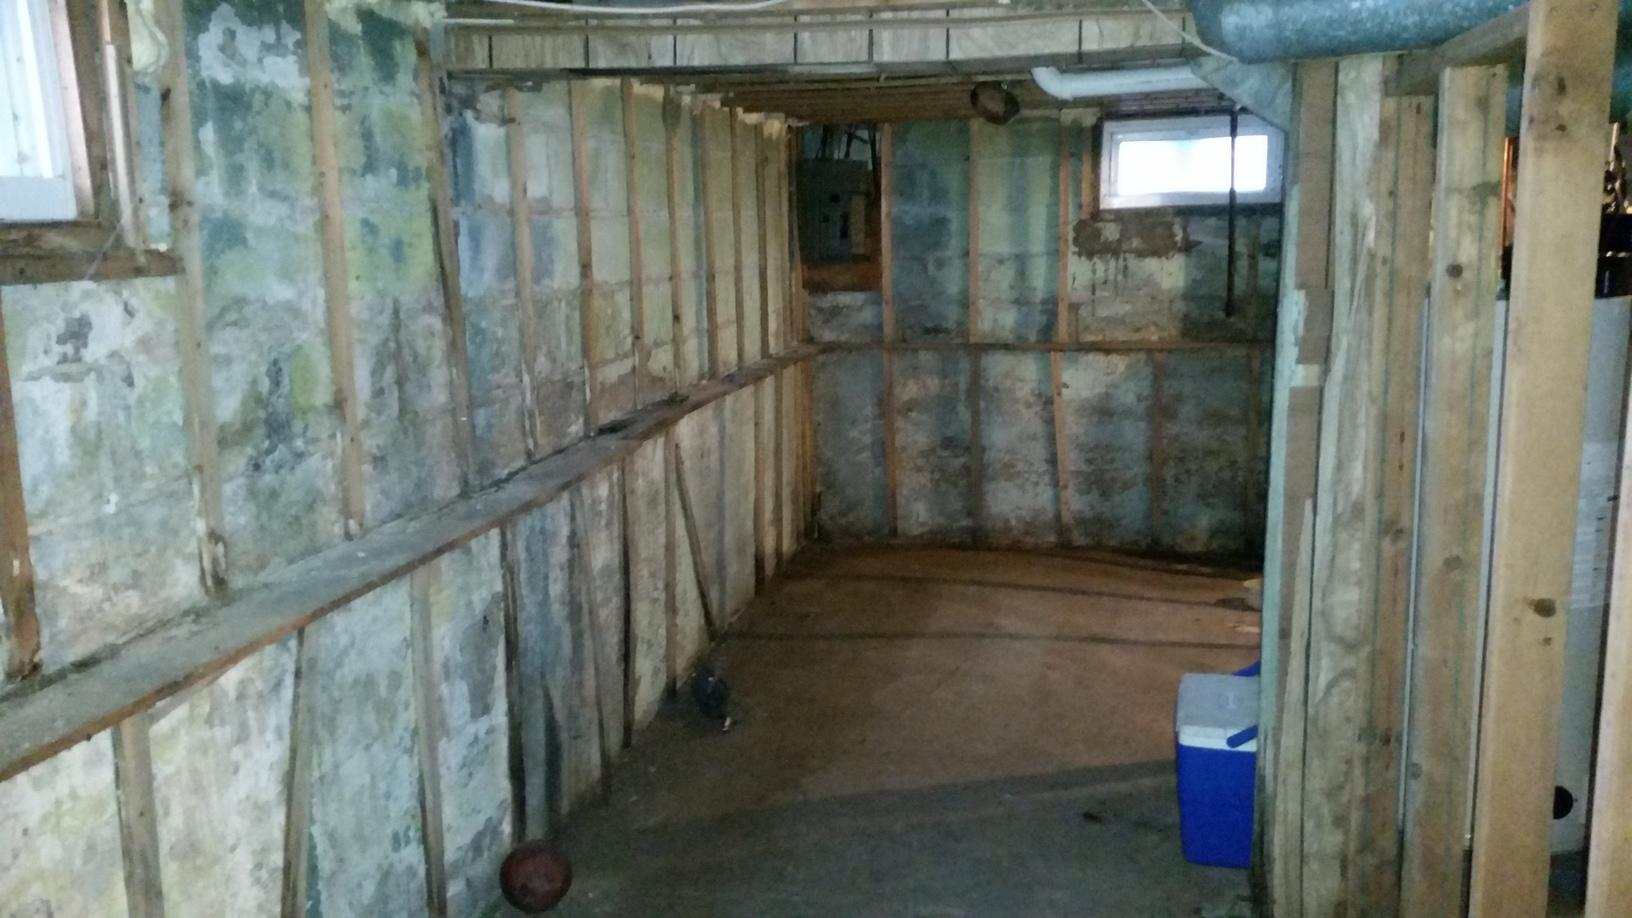 The basement before waterproofing was in need of waterproofing after repeated water intrusion.